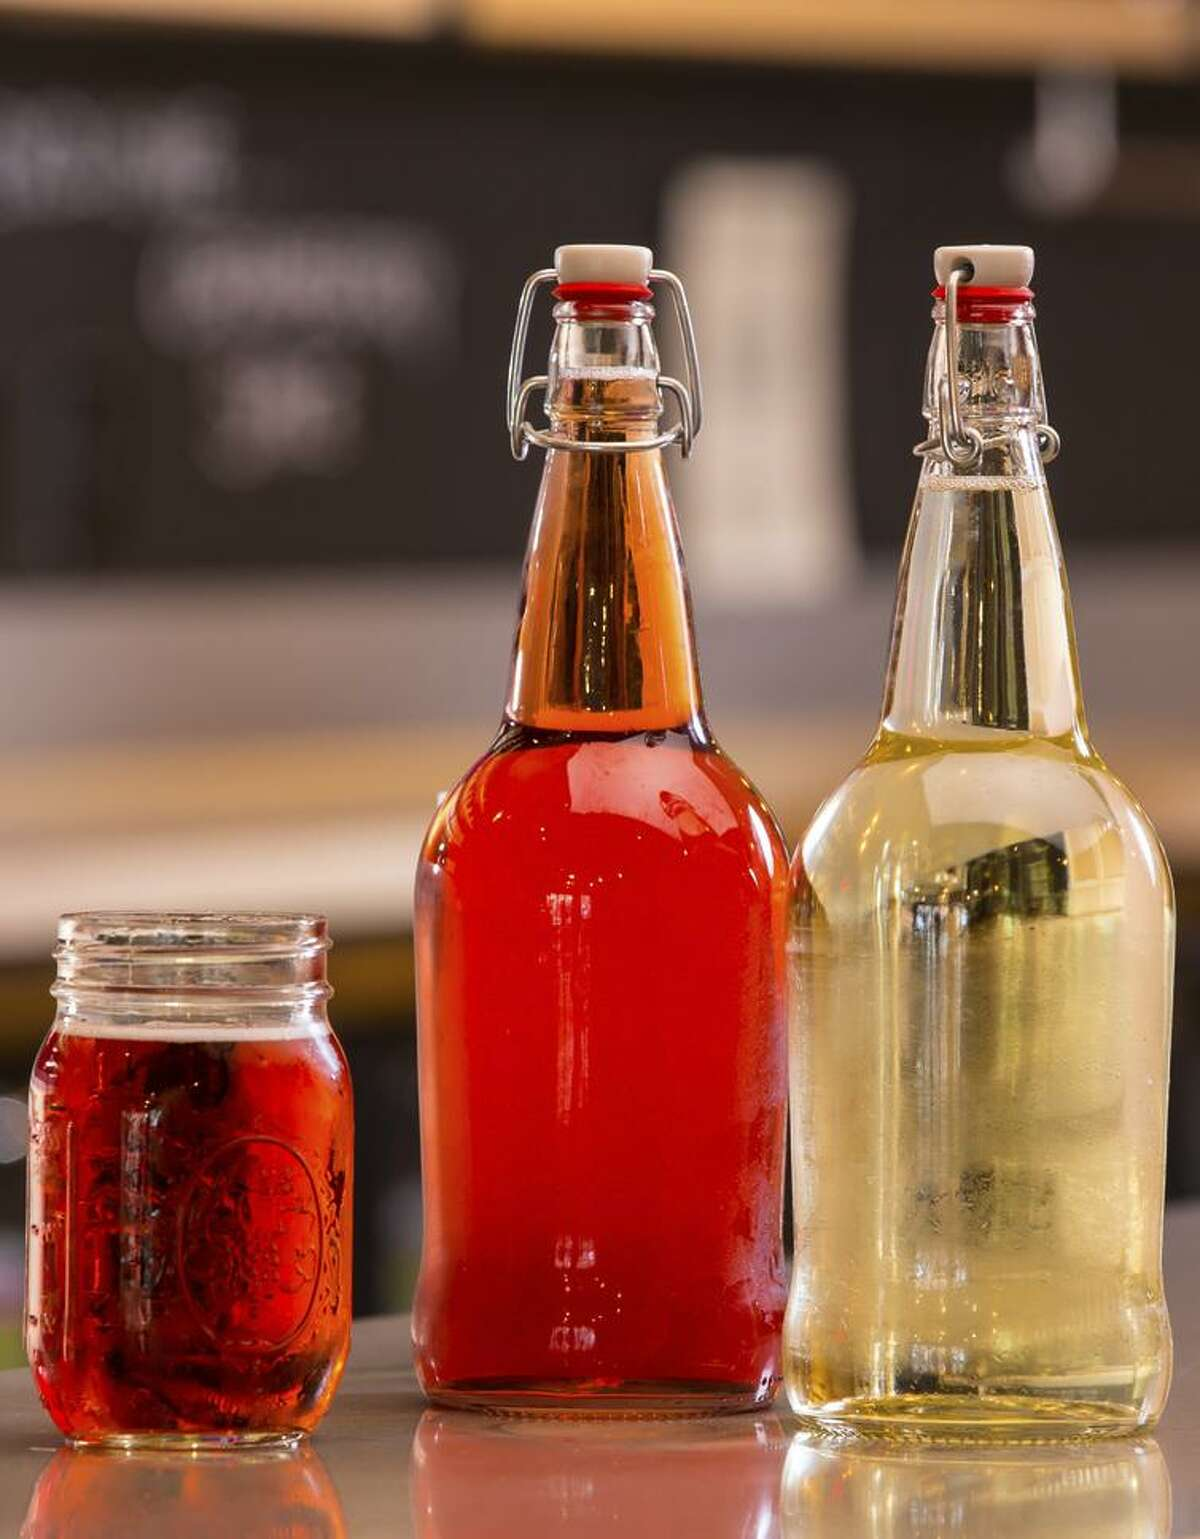 Scotto's Wine & Cider features craft ciders, including small batches only available in its tasting room.